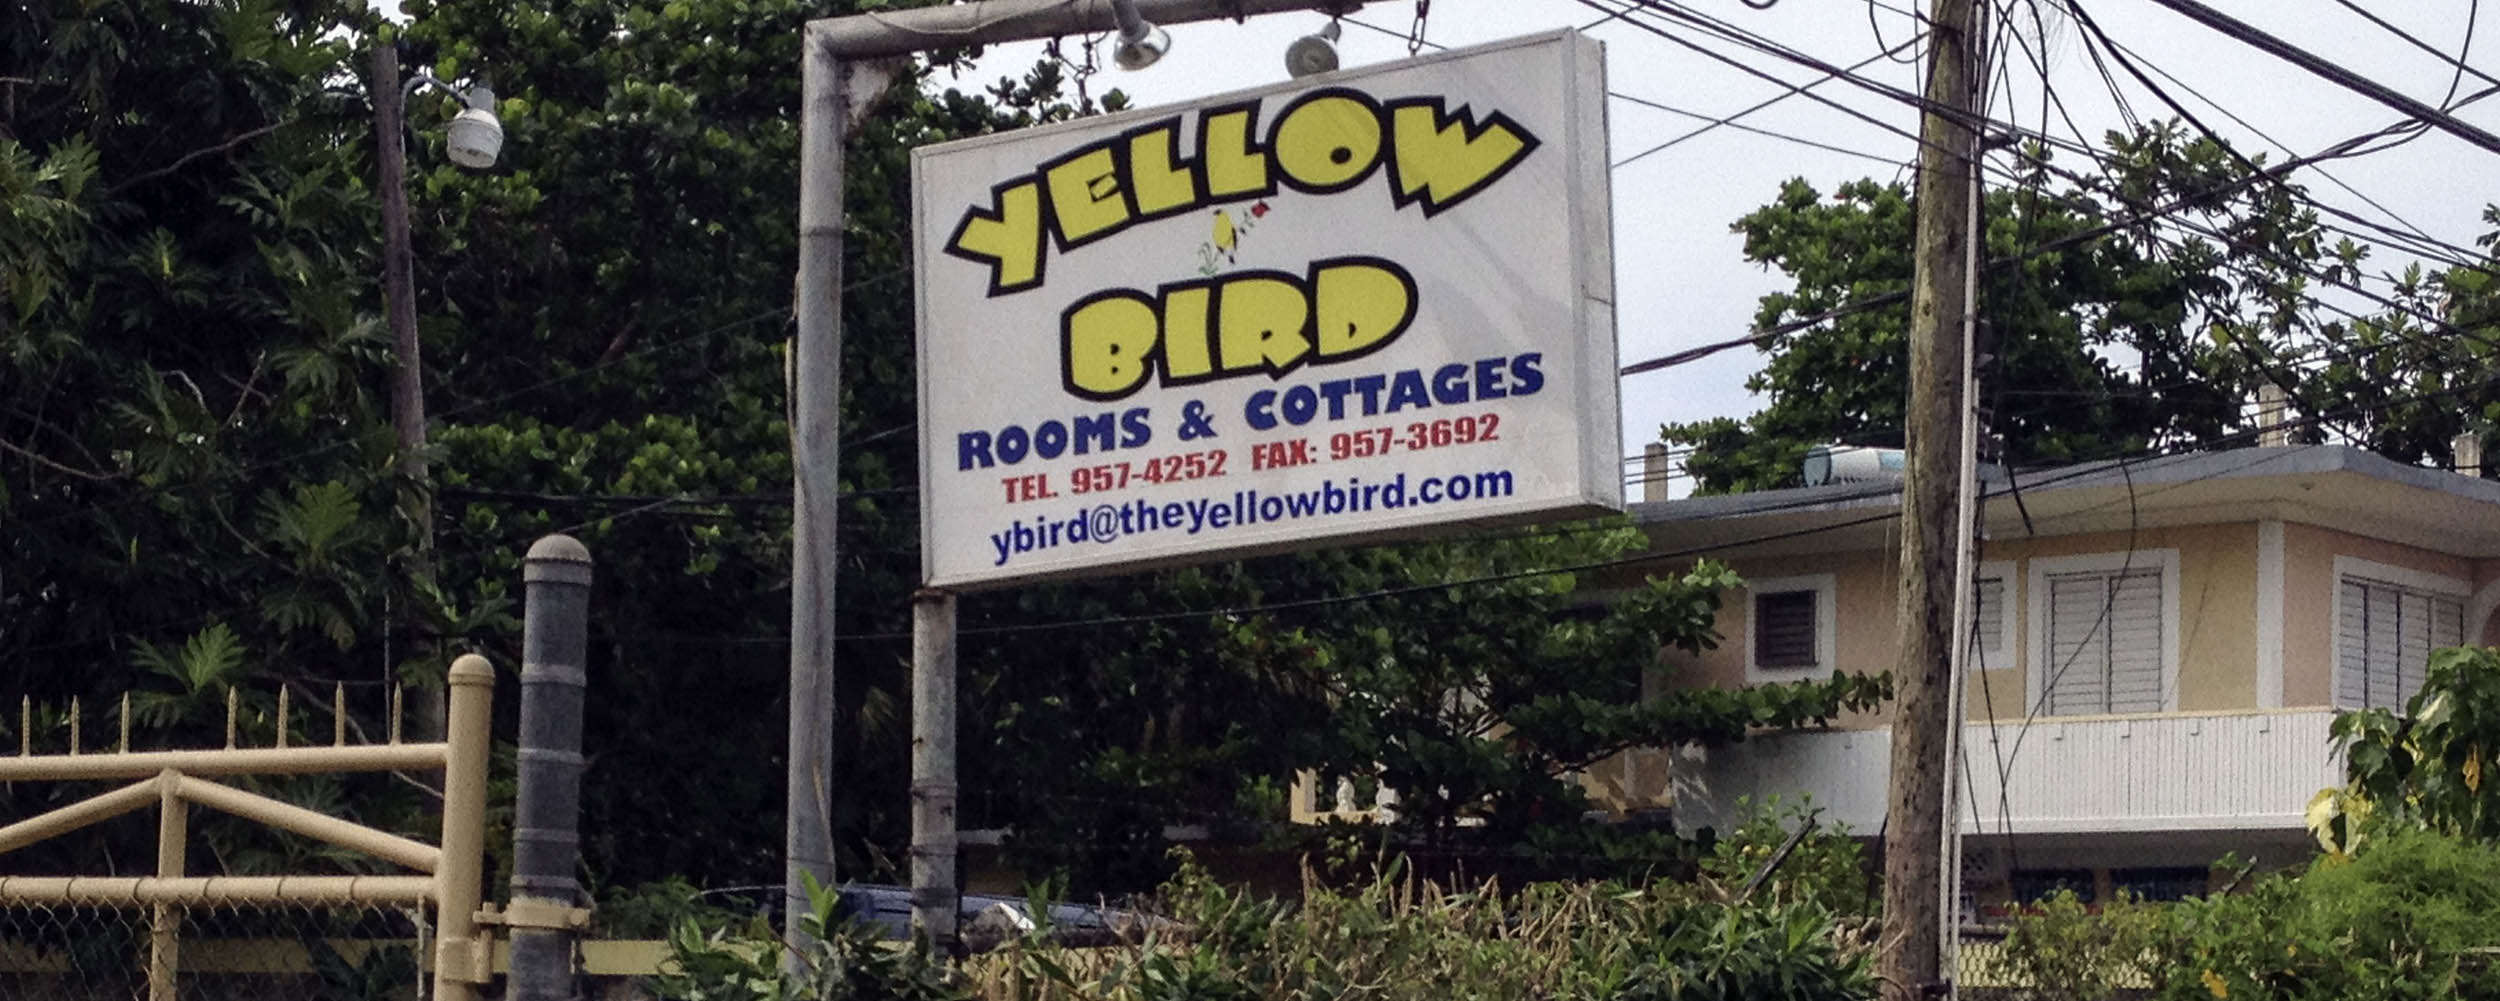 Yellow Bird Rooms and Cottages - Negril Jamaica